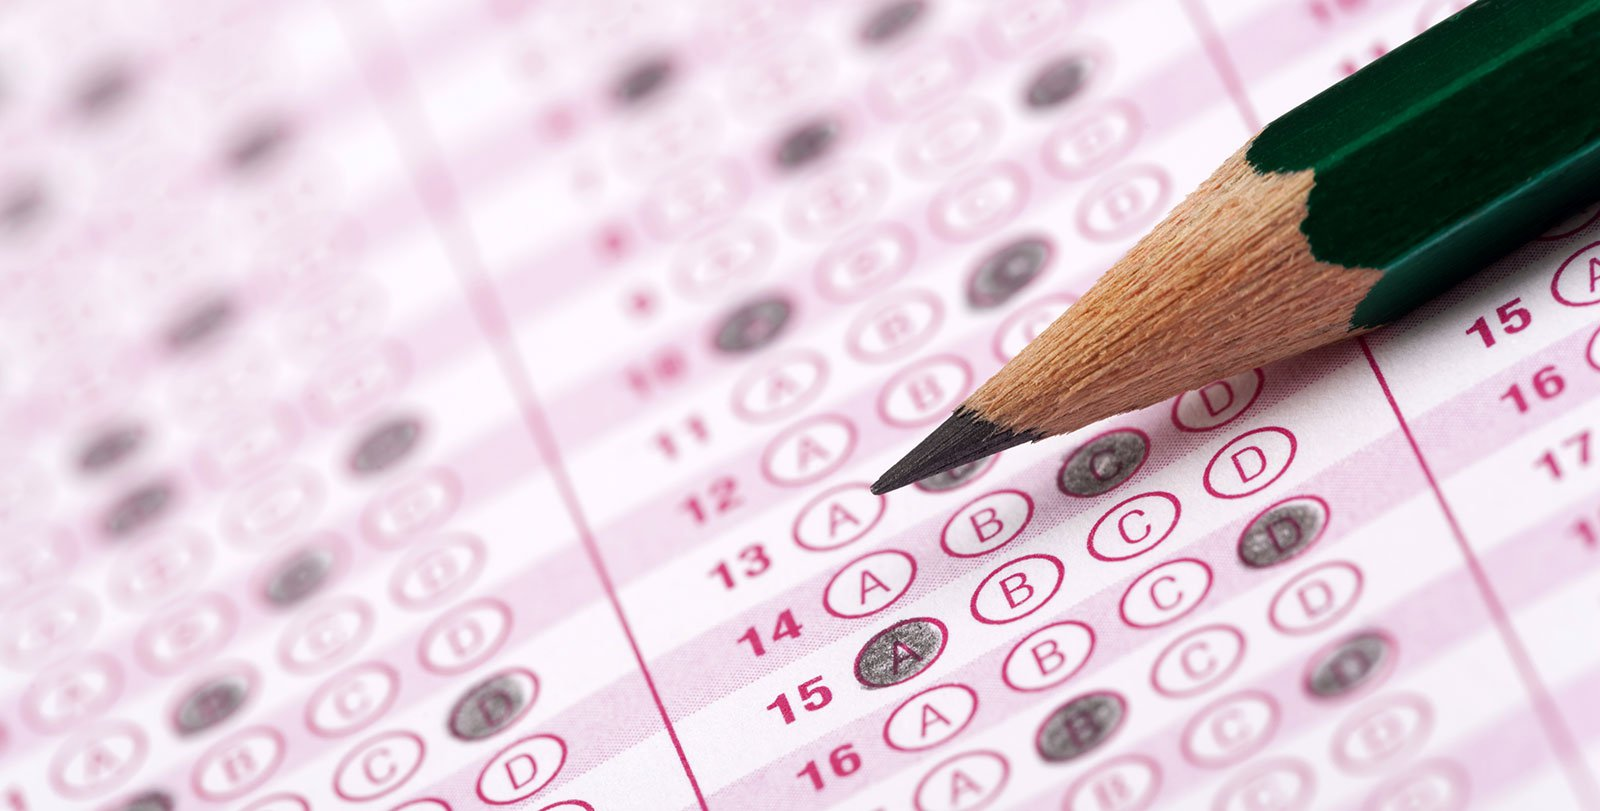 Scantron sheet with filled-in answer bubbles and sharpened pencil